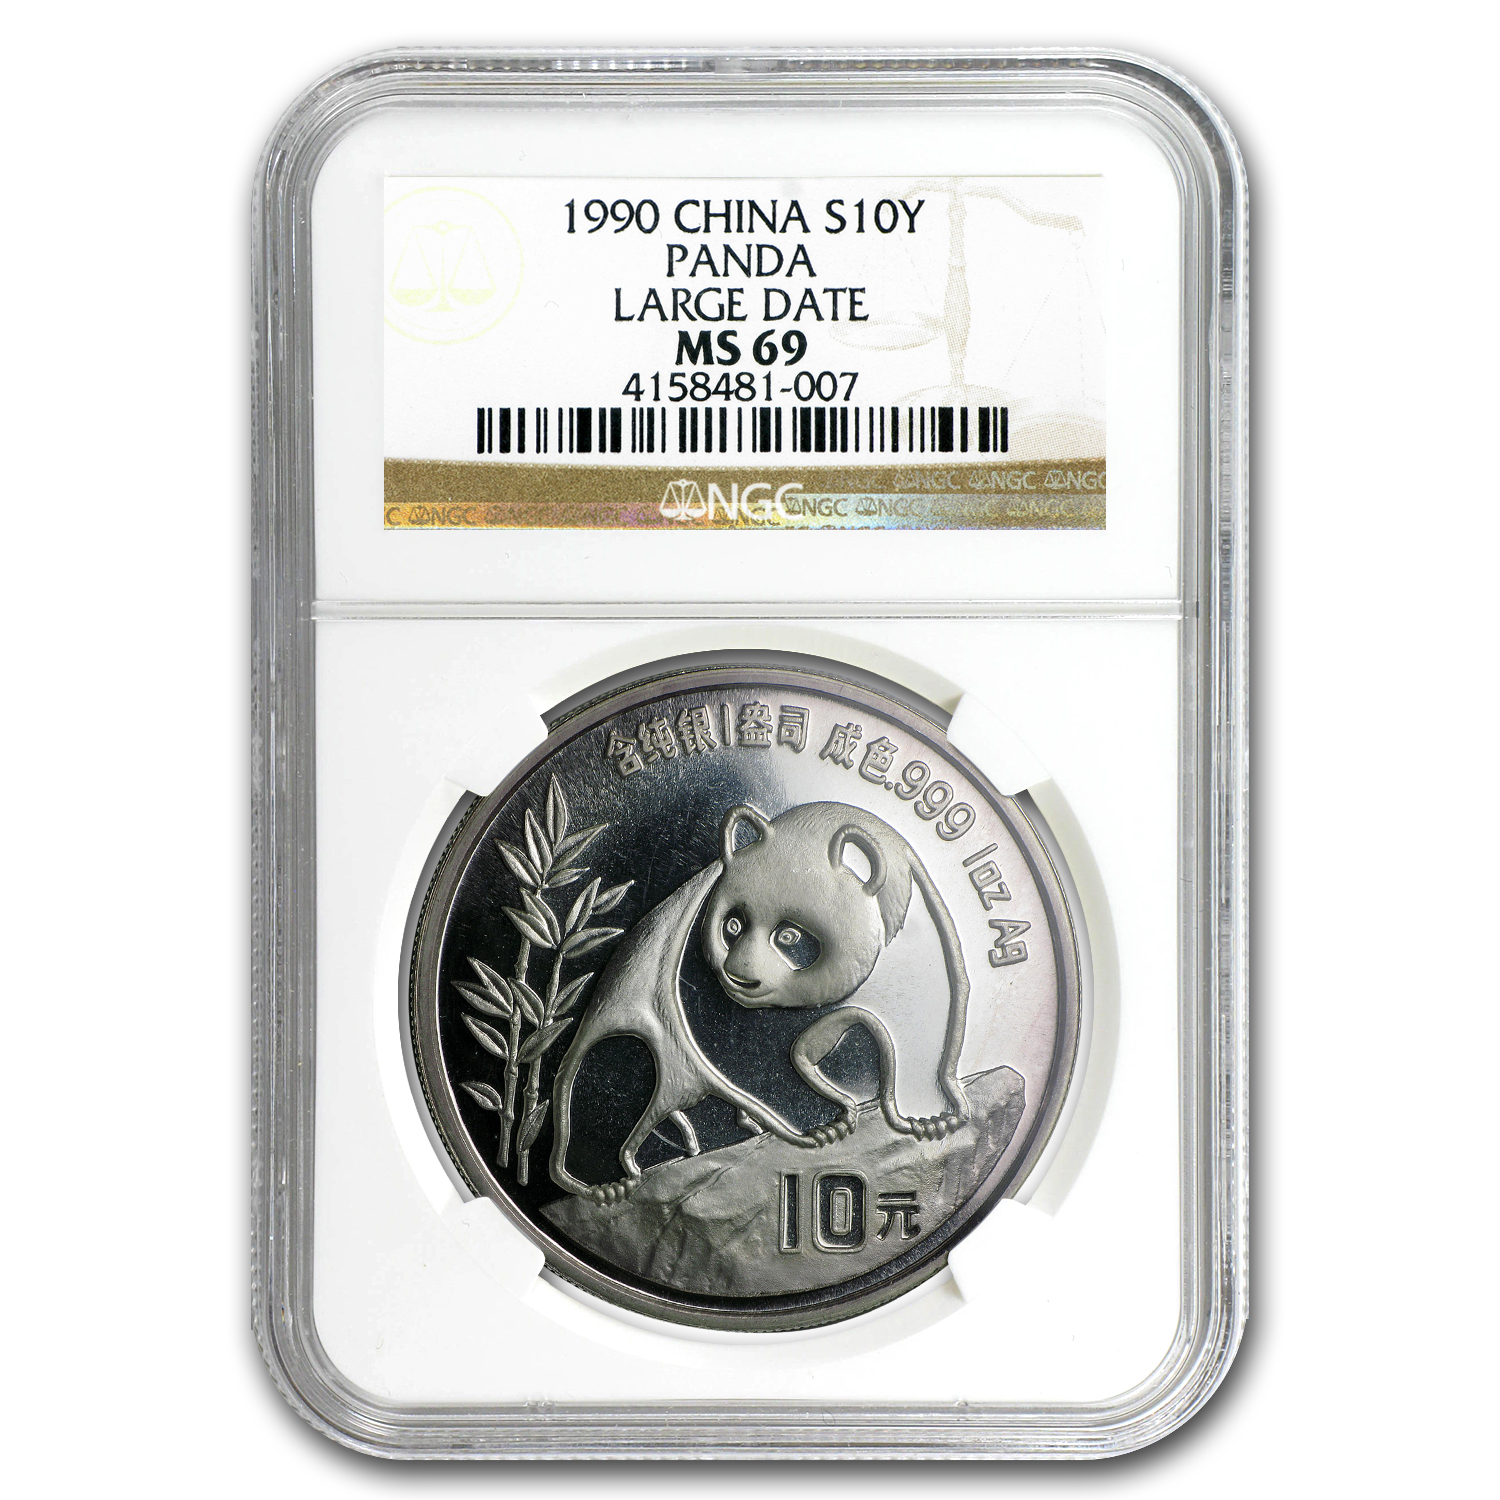 1990 China 1 oz Silver Panda MS-69 NGC (Large Date)